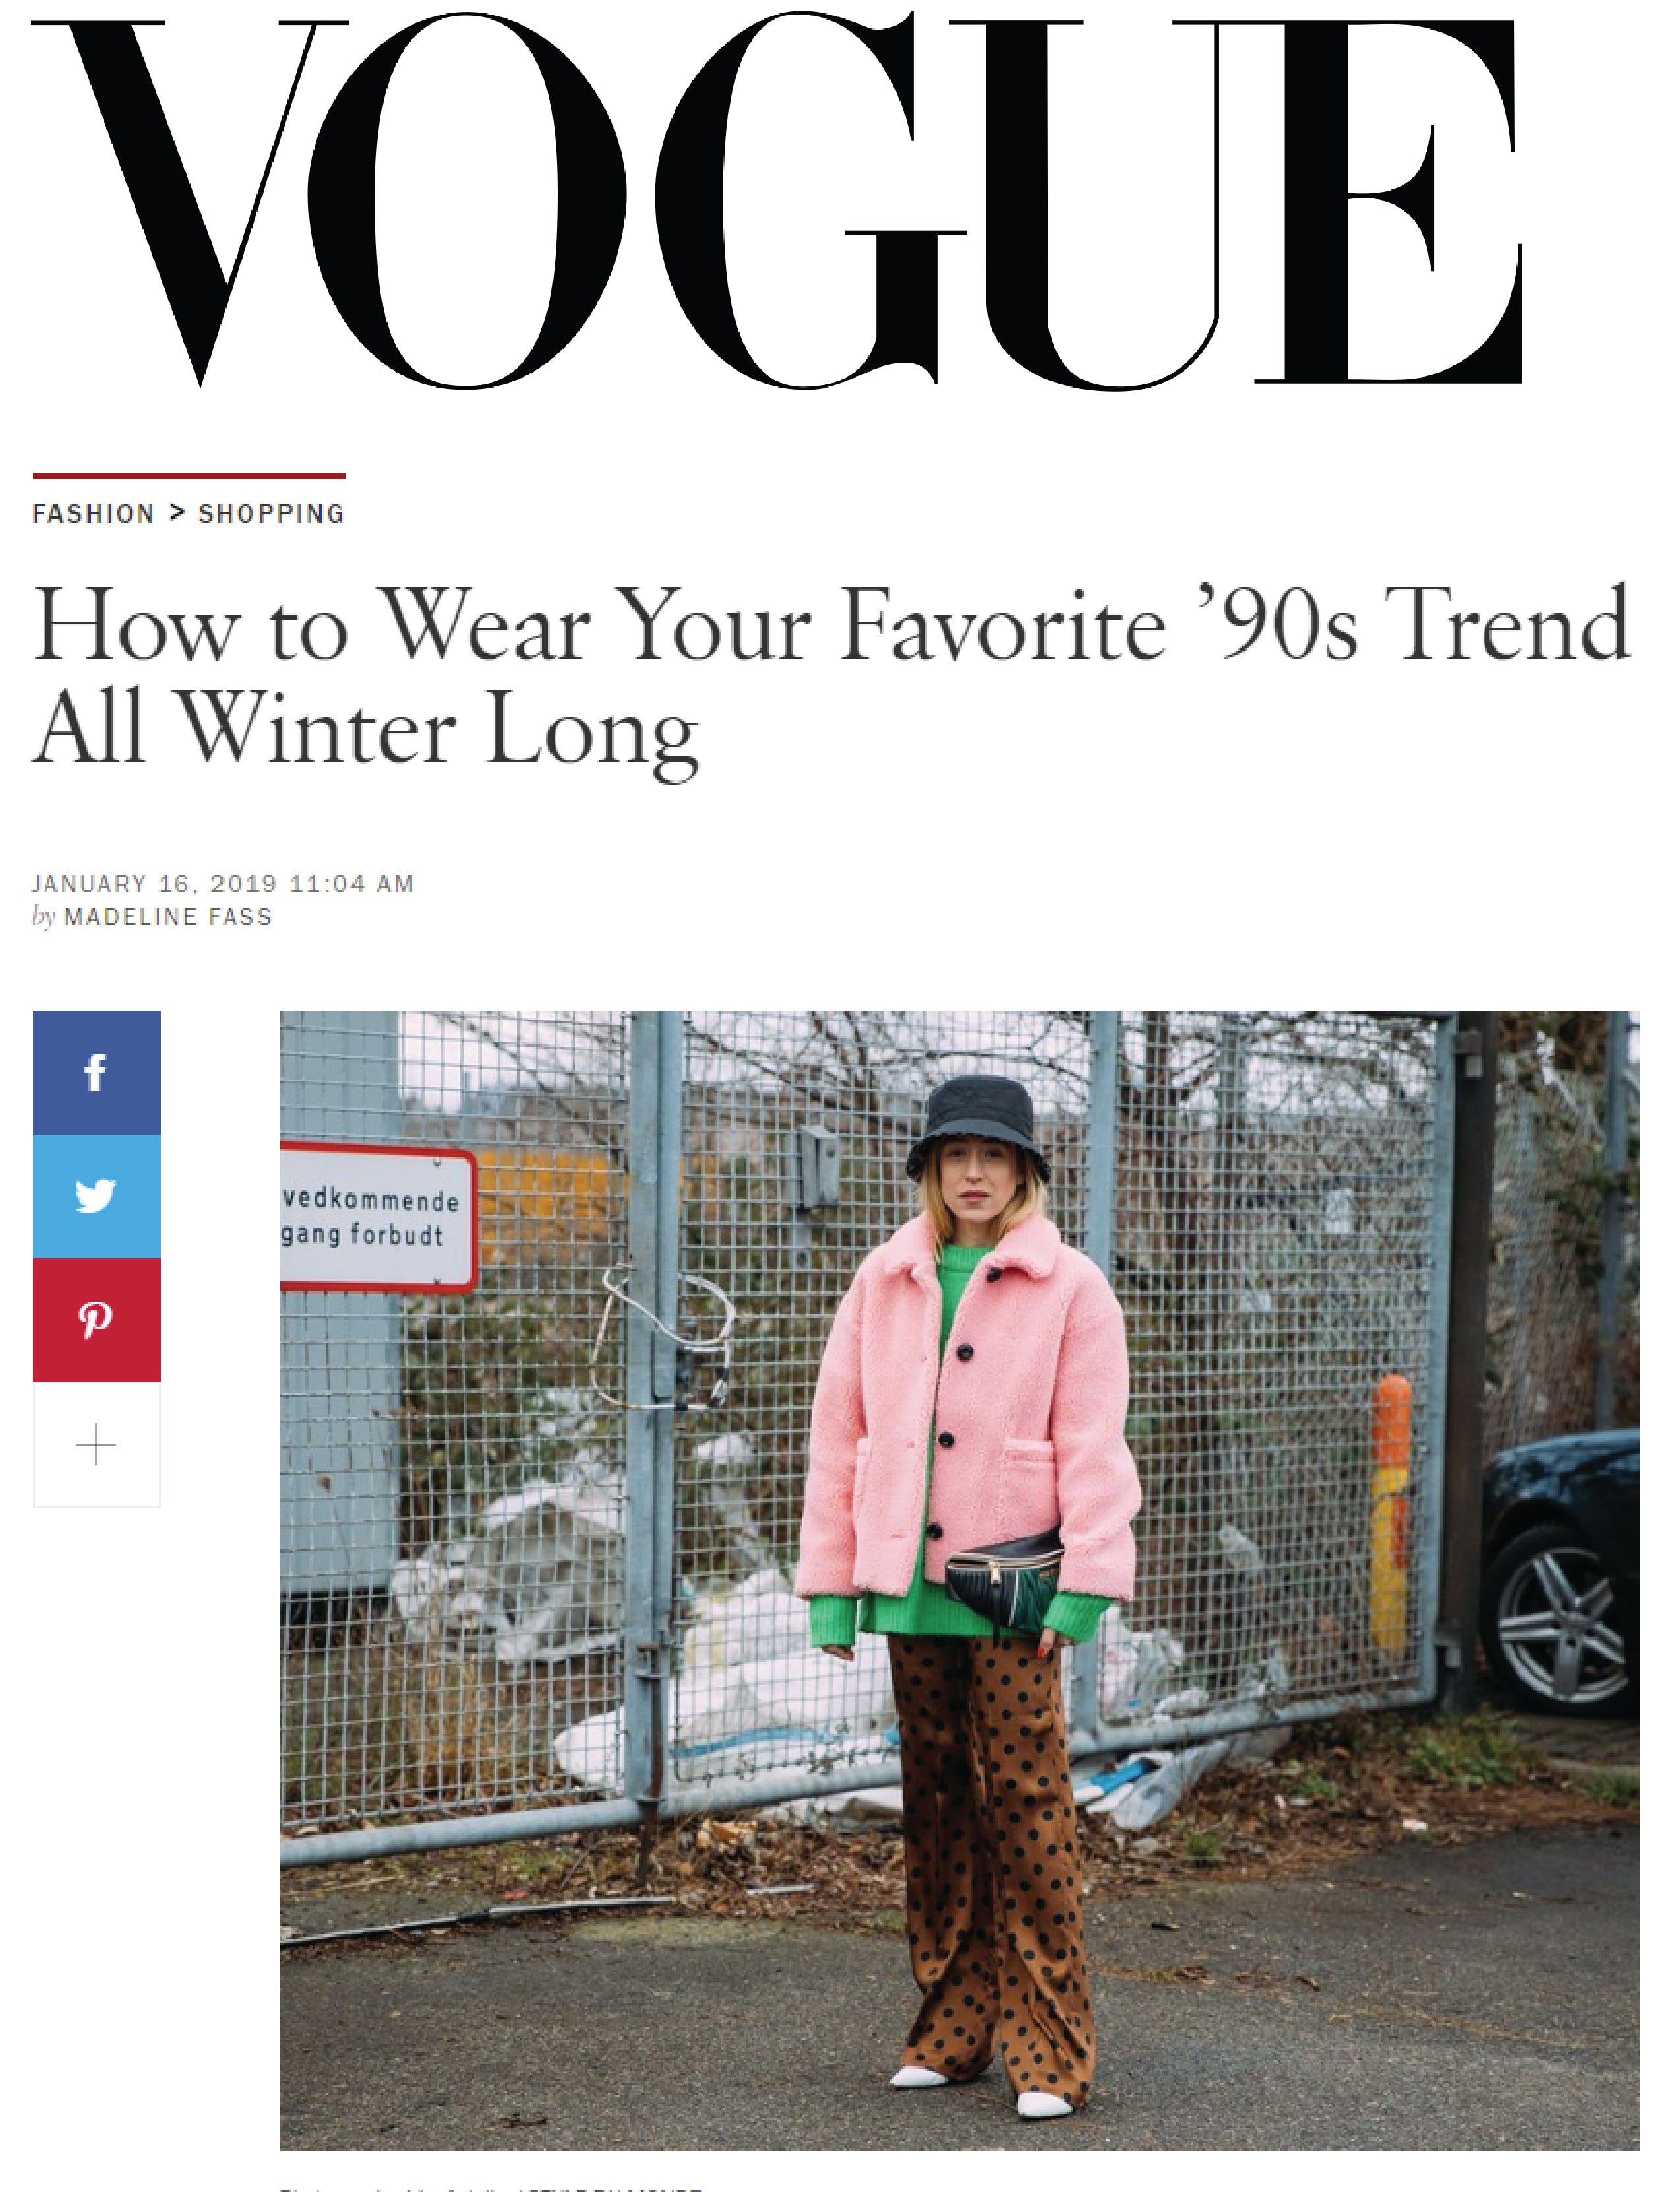 vogue-how-to-wear-your-favorite-90s-trend-all-winter-long